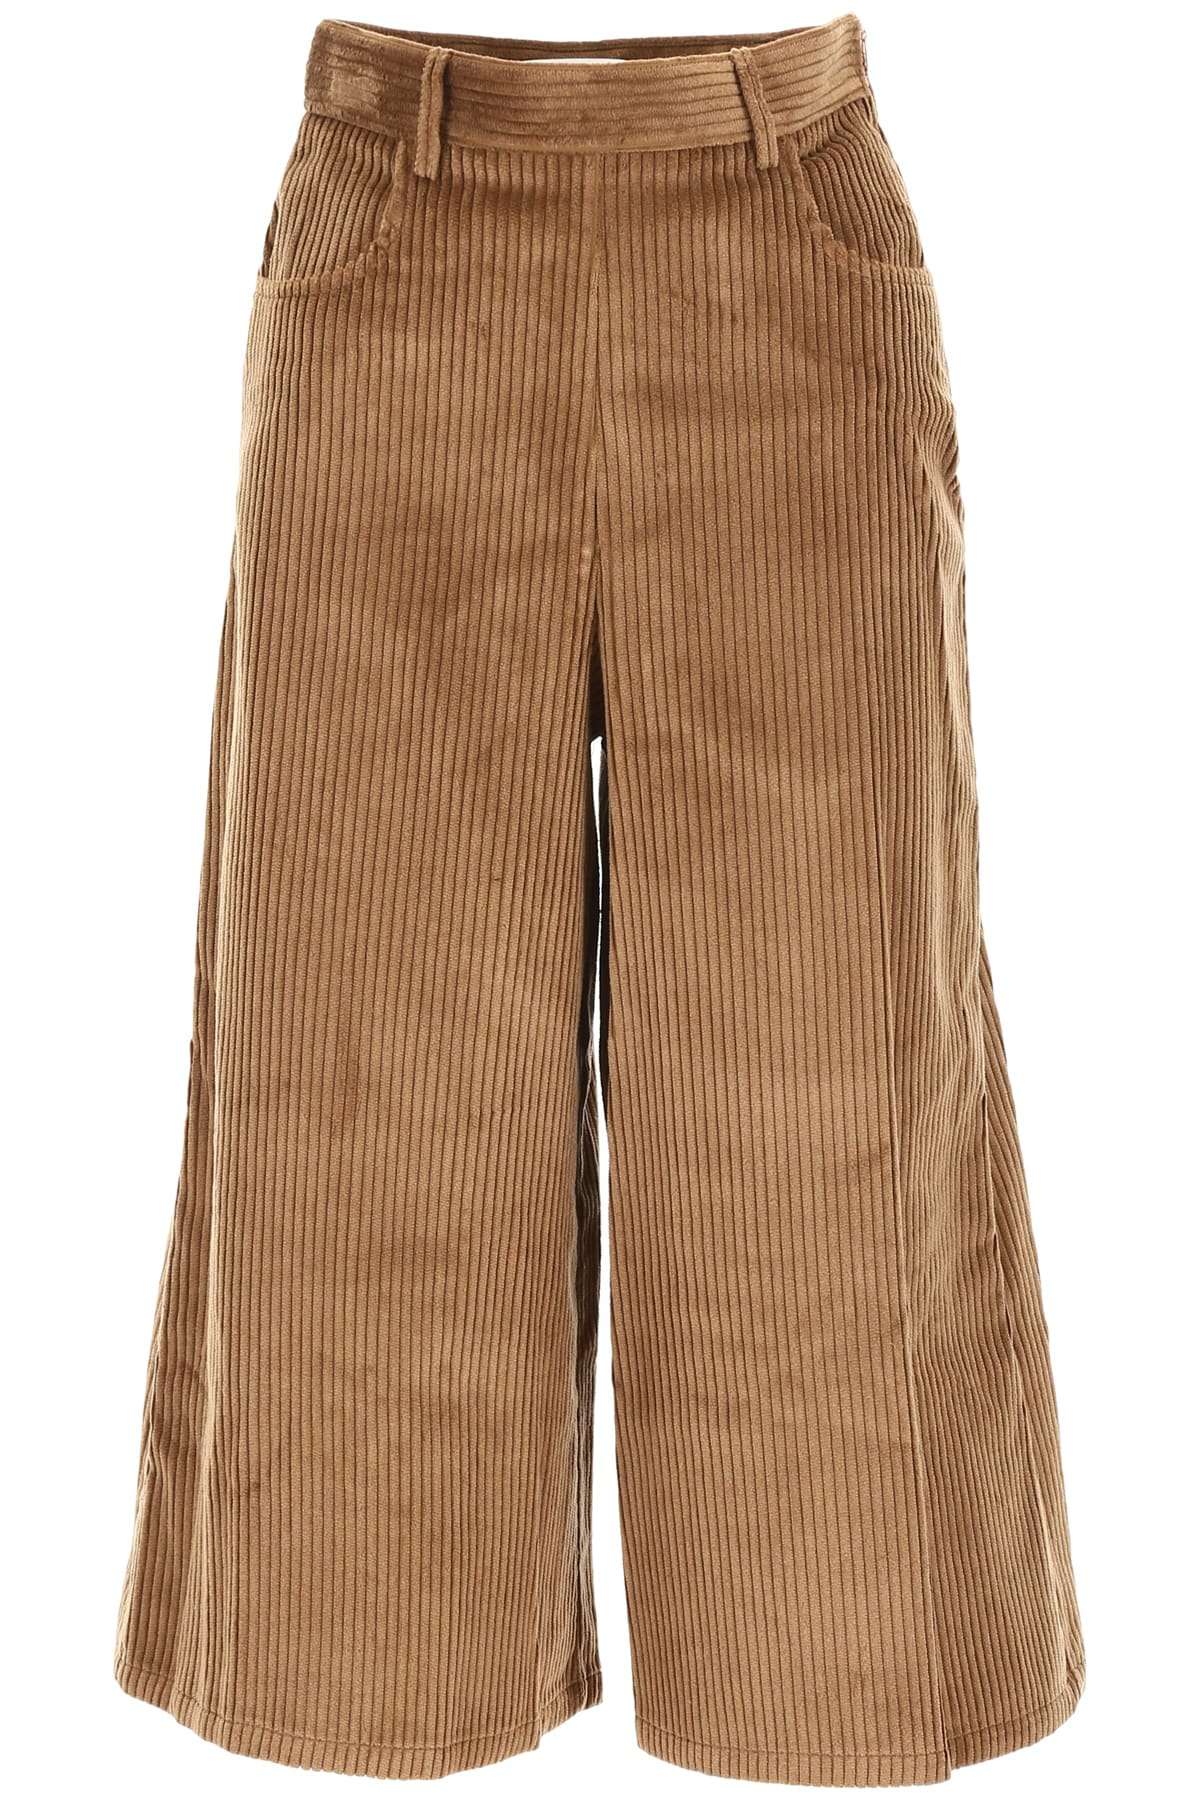 8d20257034 See by Chloé Corduroy Culottes